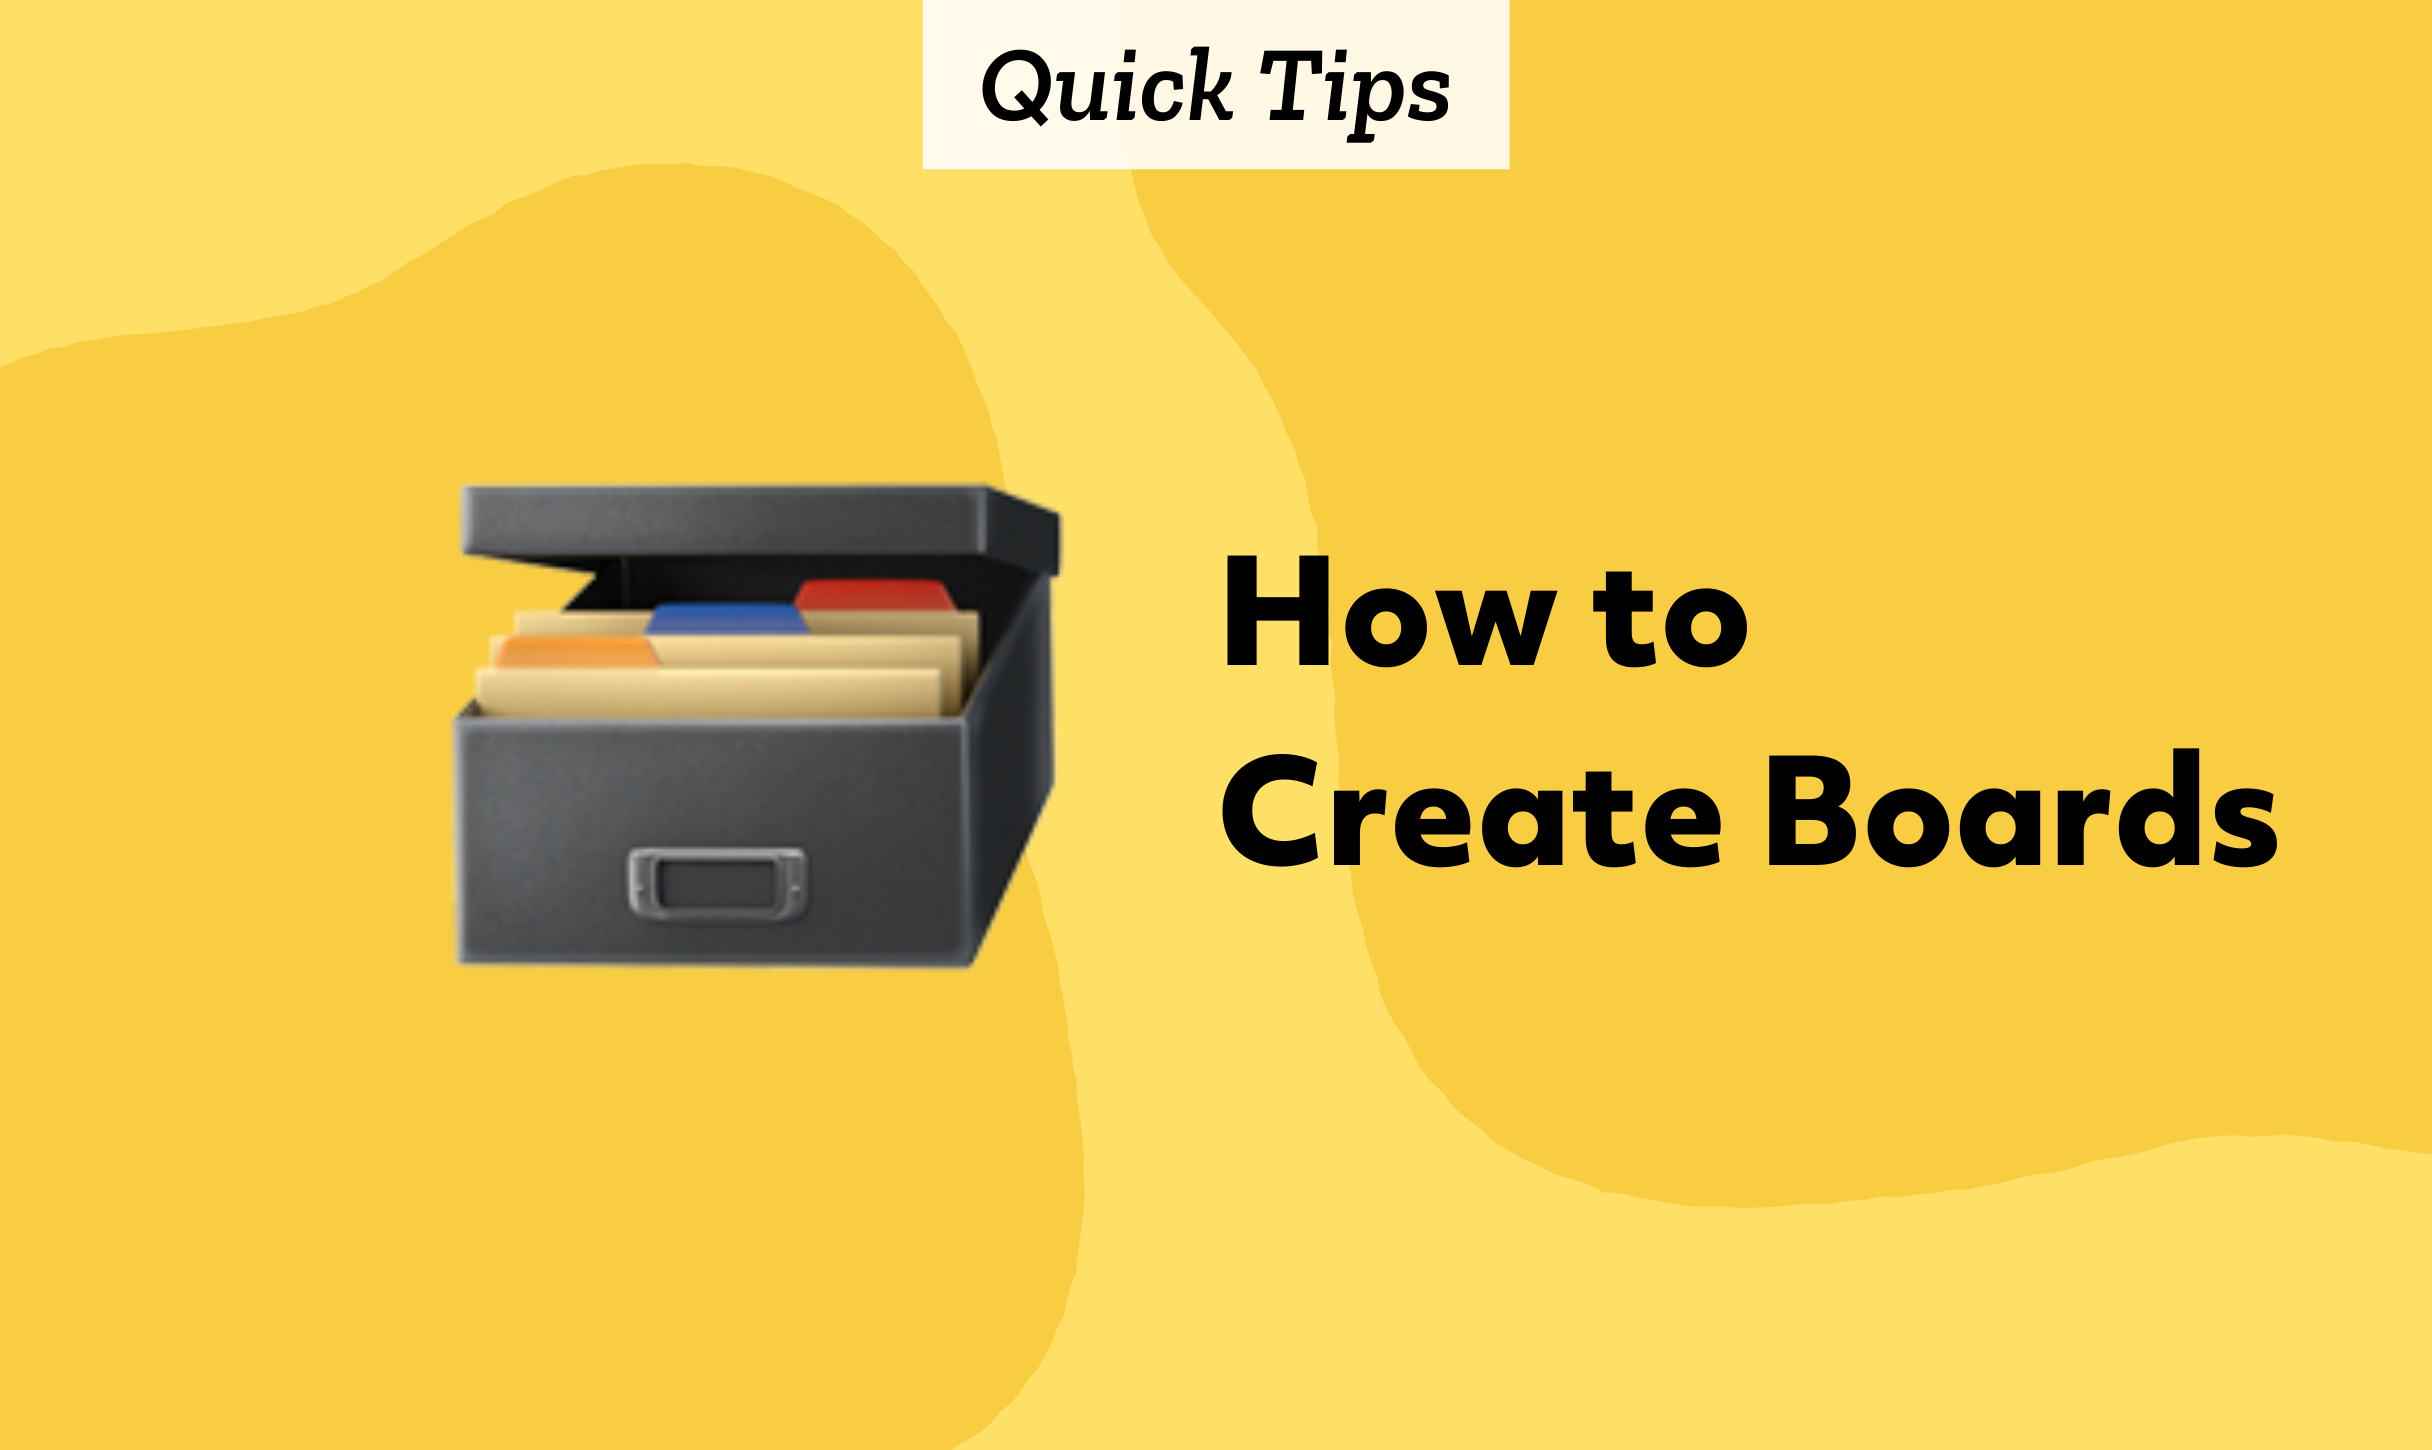 Quick Tips: How to Create Boards